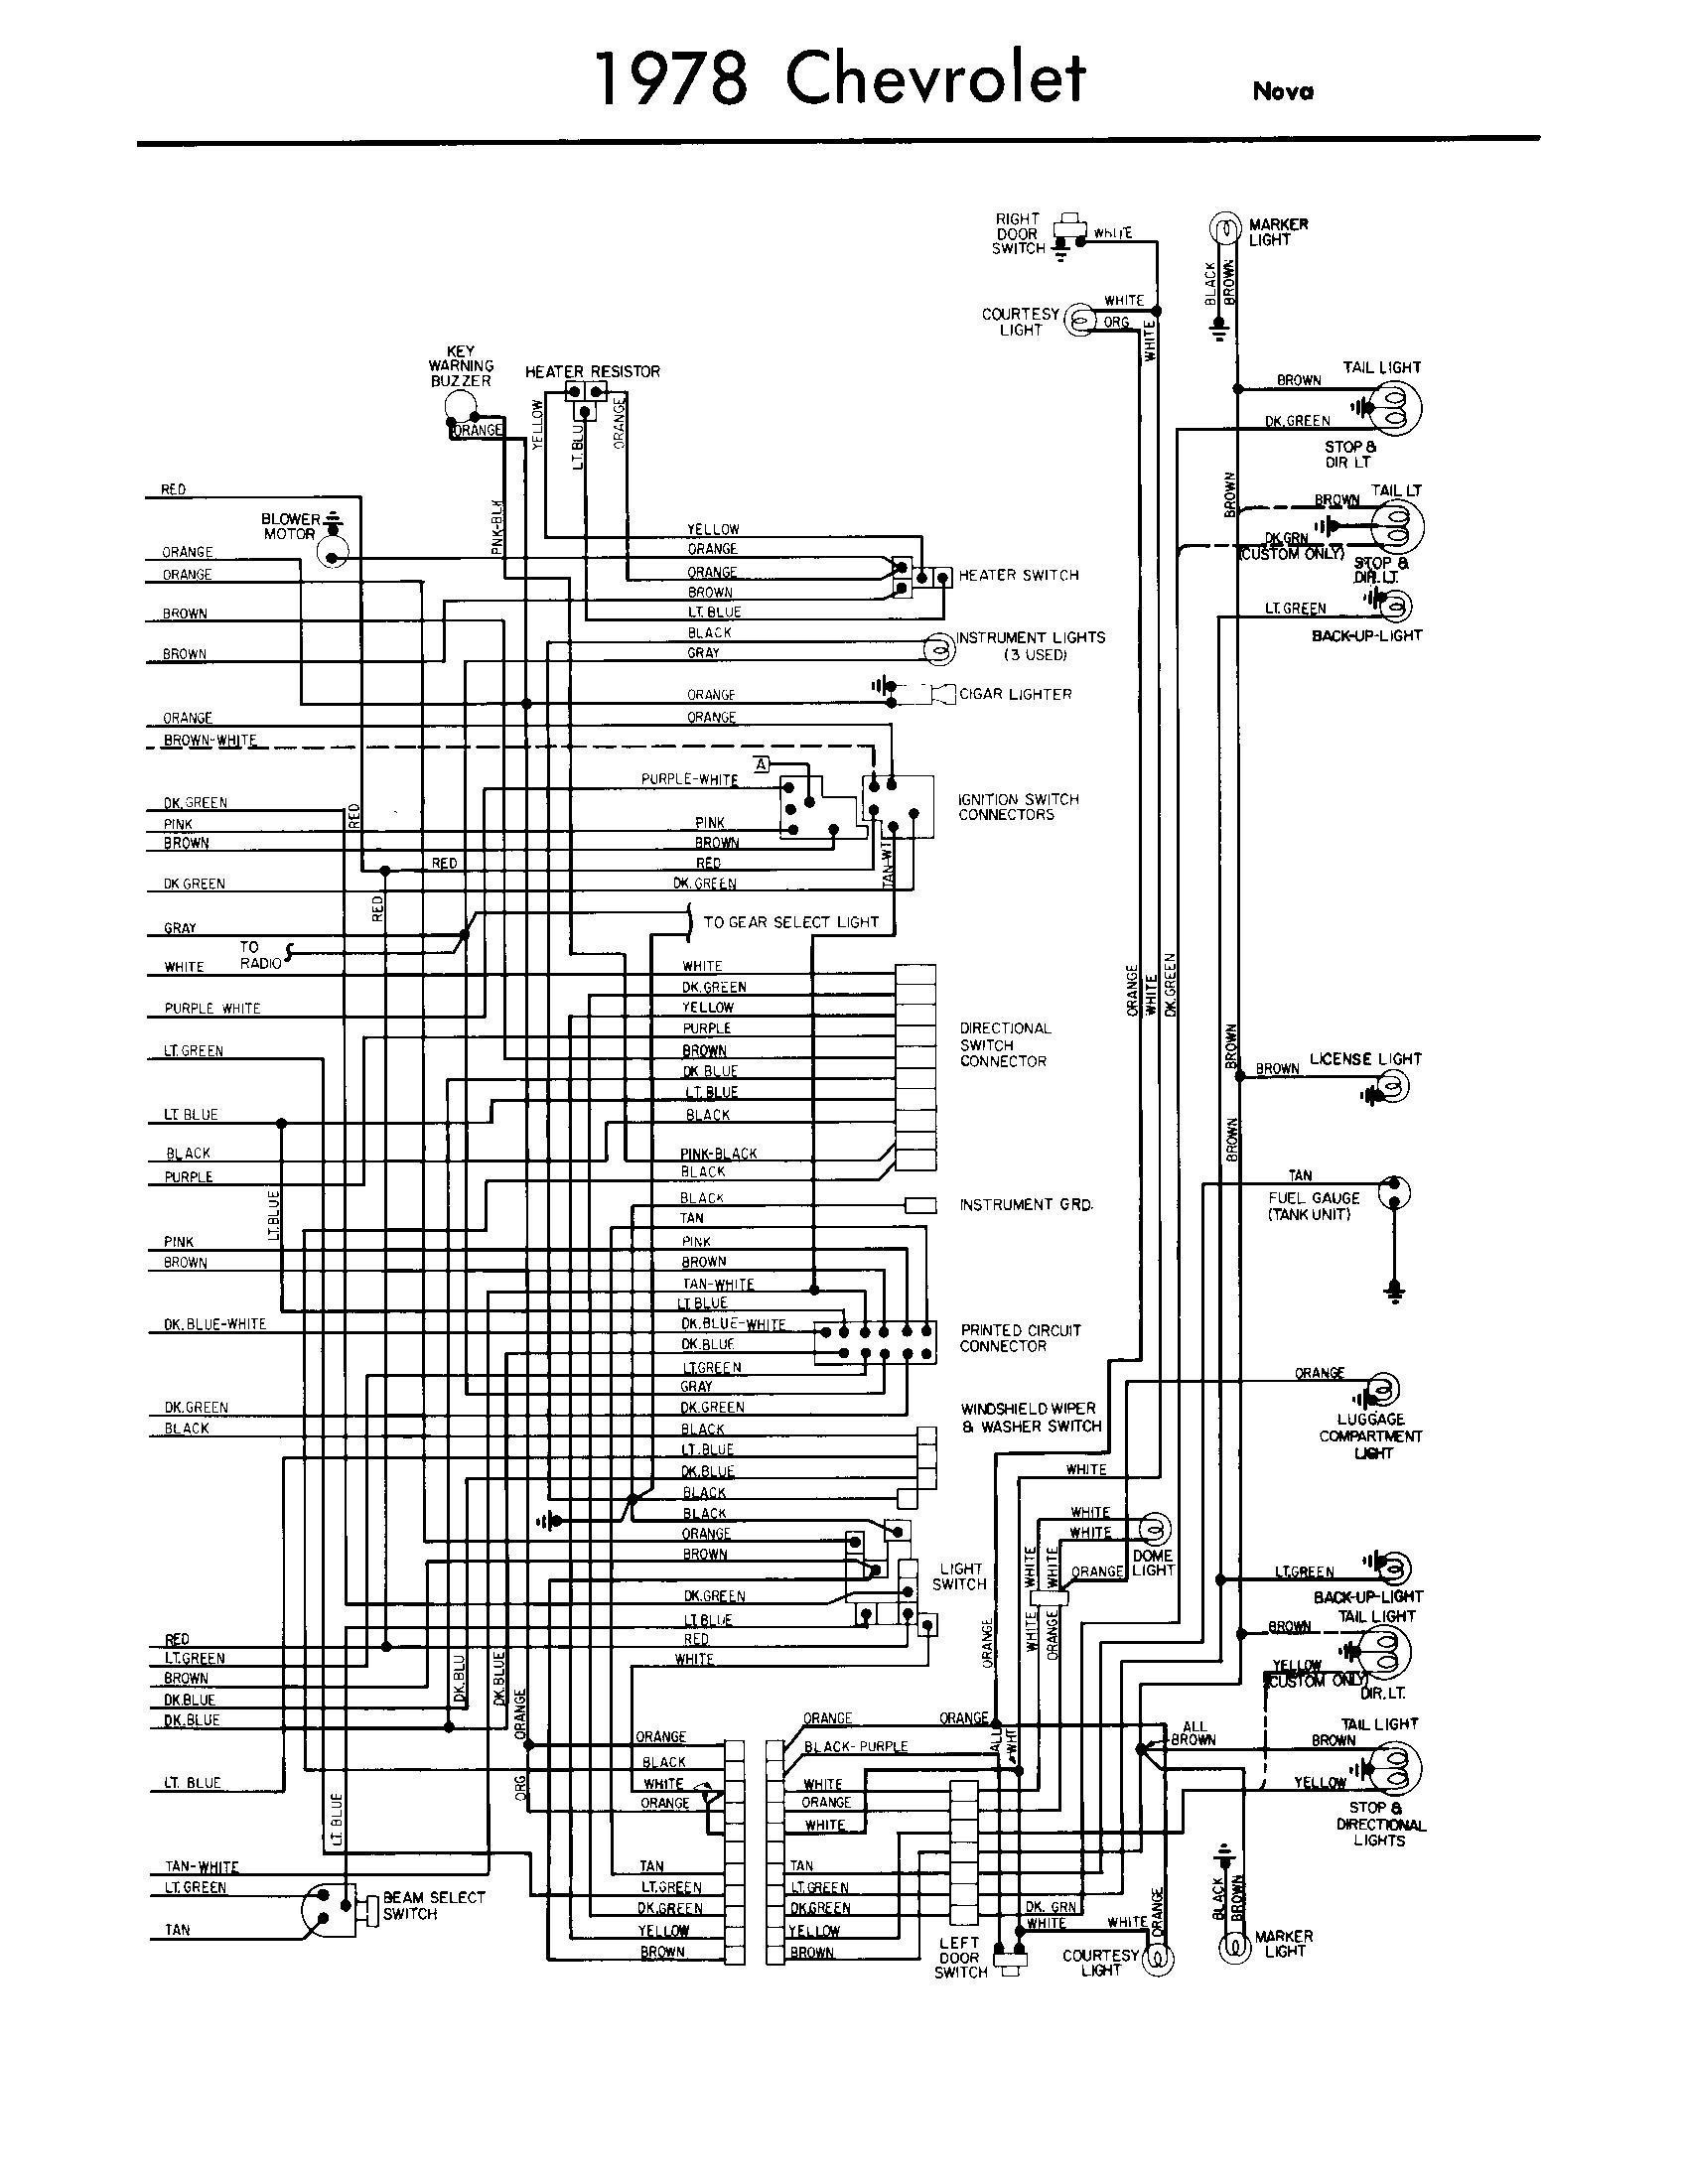 1984 Chevy Truck Wiring Diagram from i1.wp.com